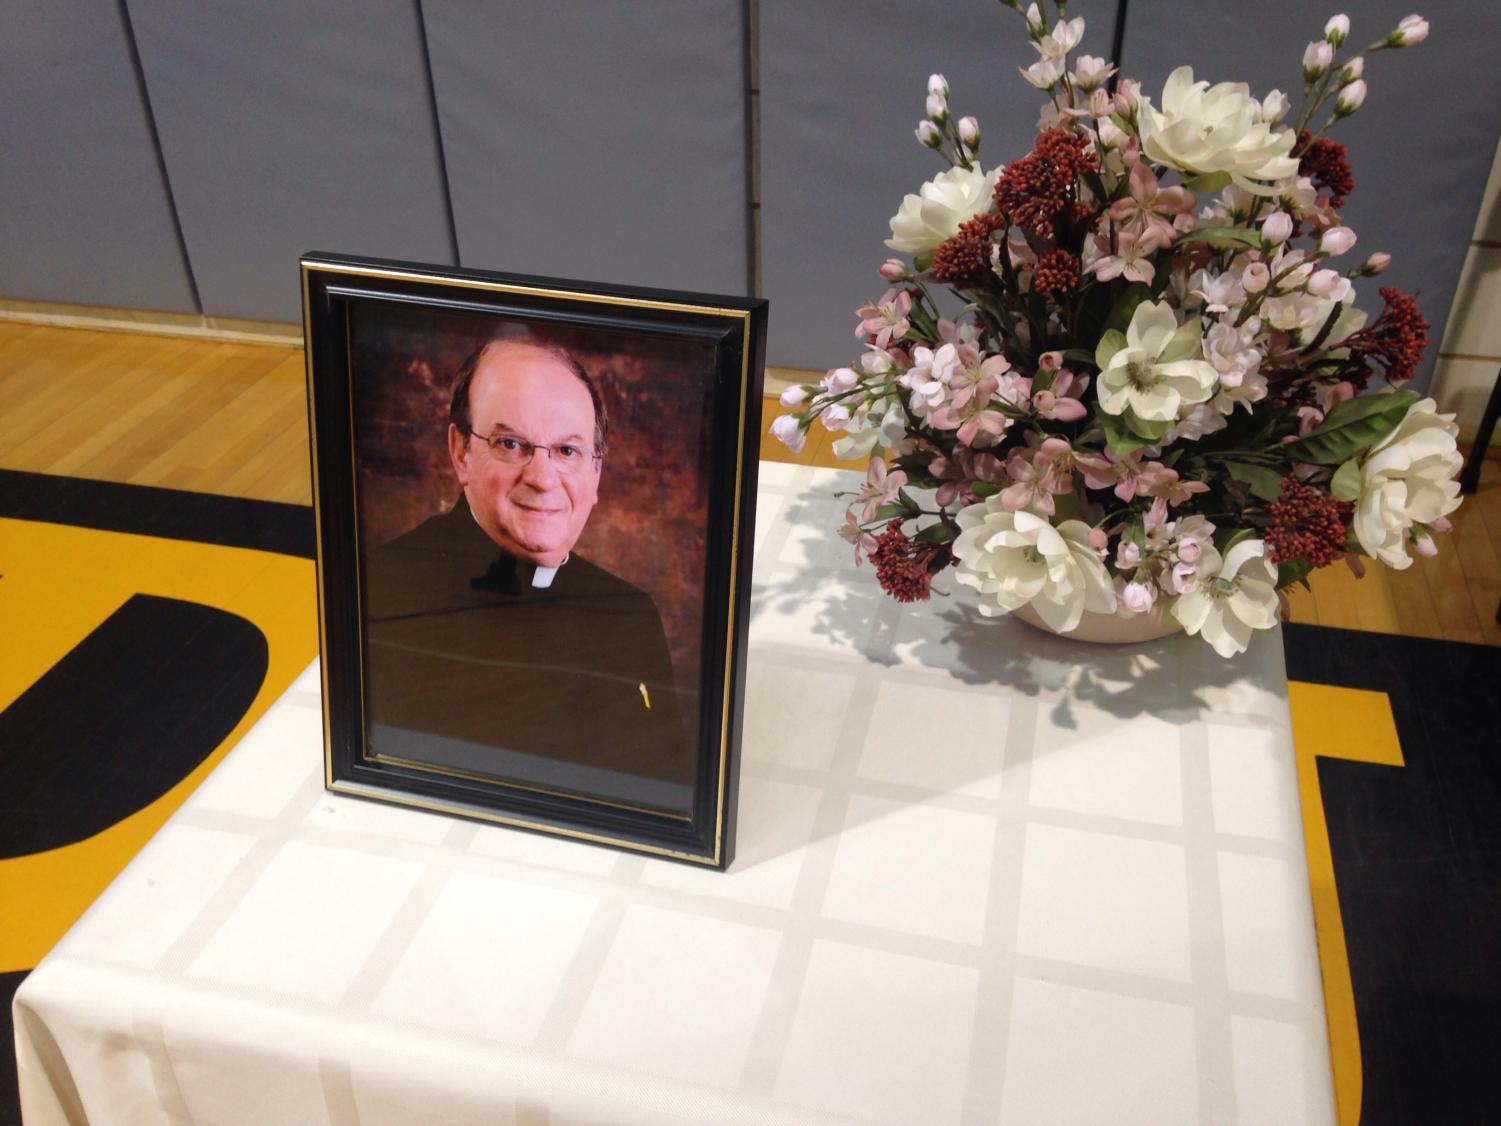 Father Nick's picture on display.